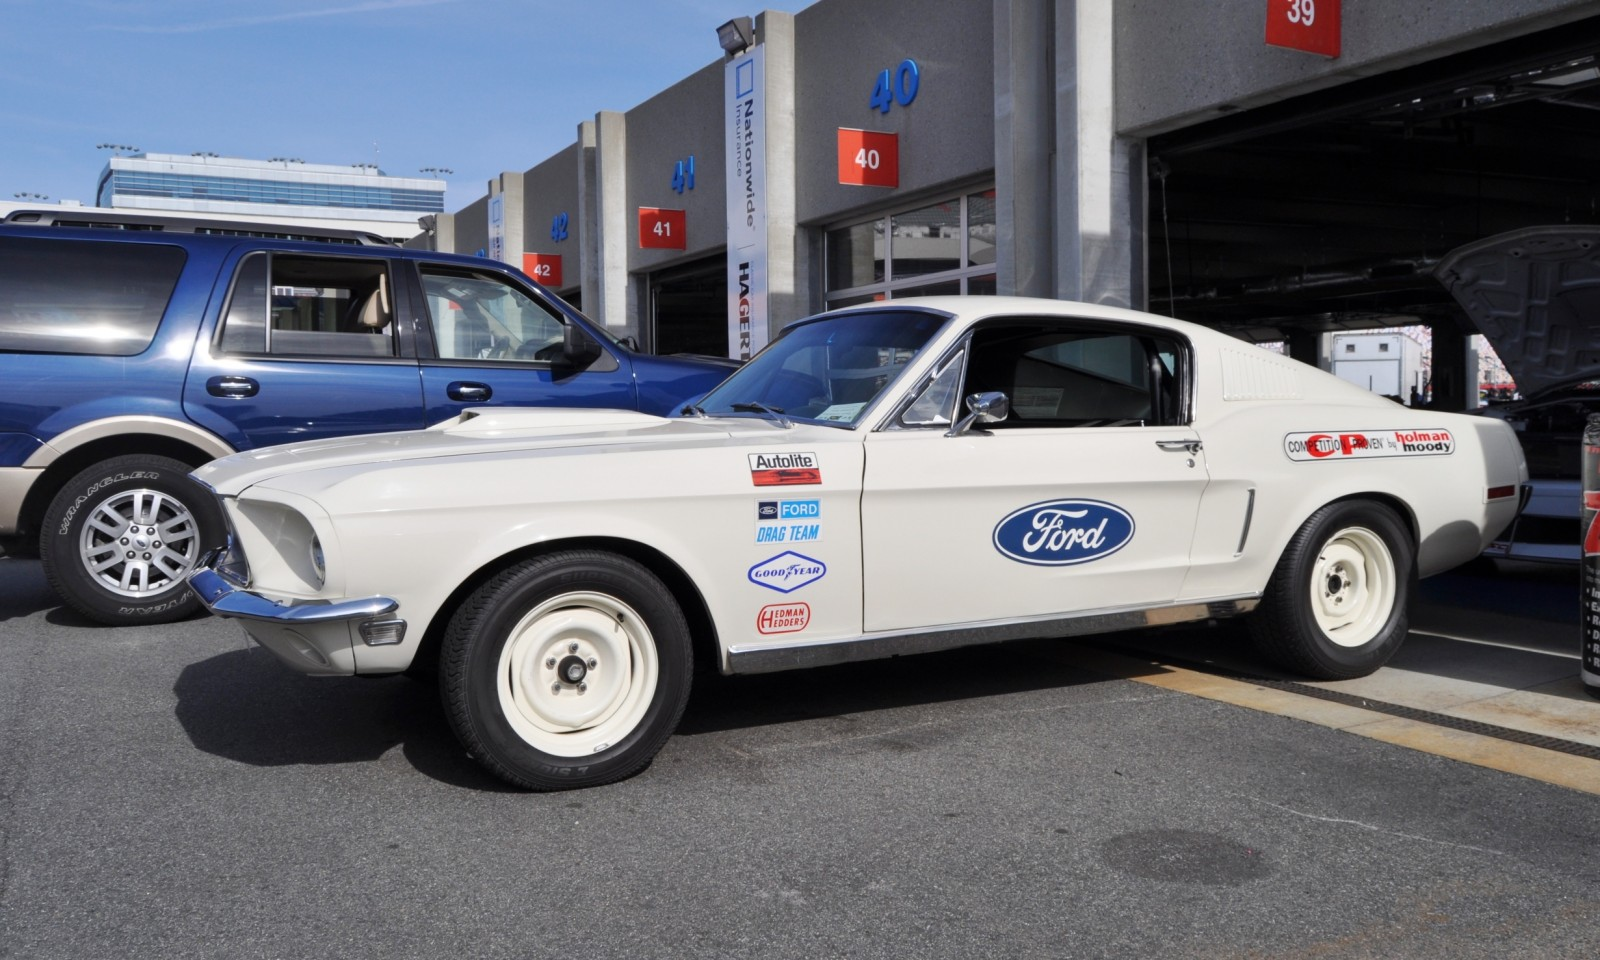 1968 Ford Drag Team - Mustang 428 Cobra Jet 6